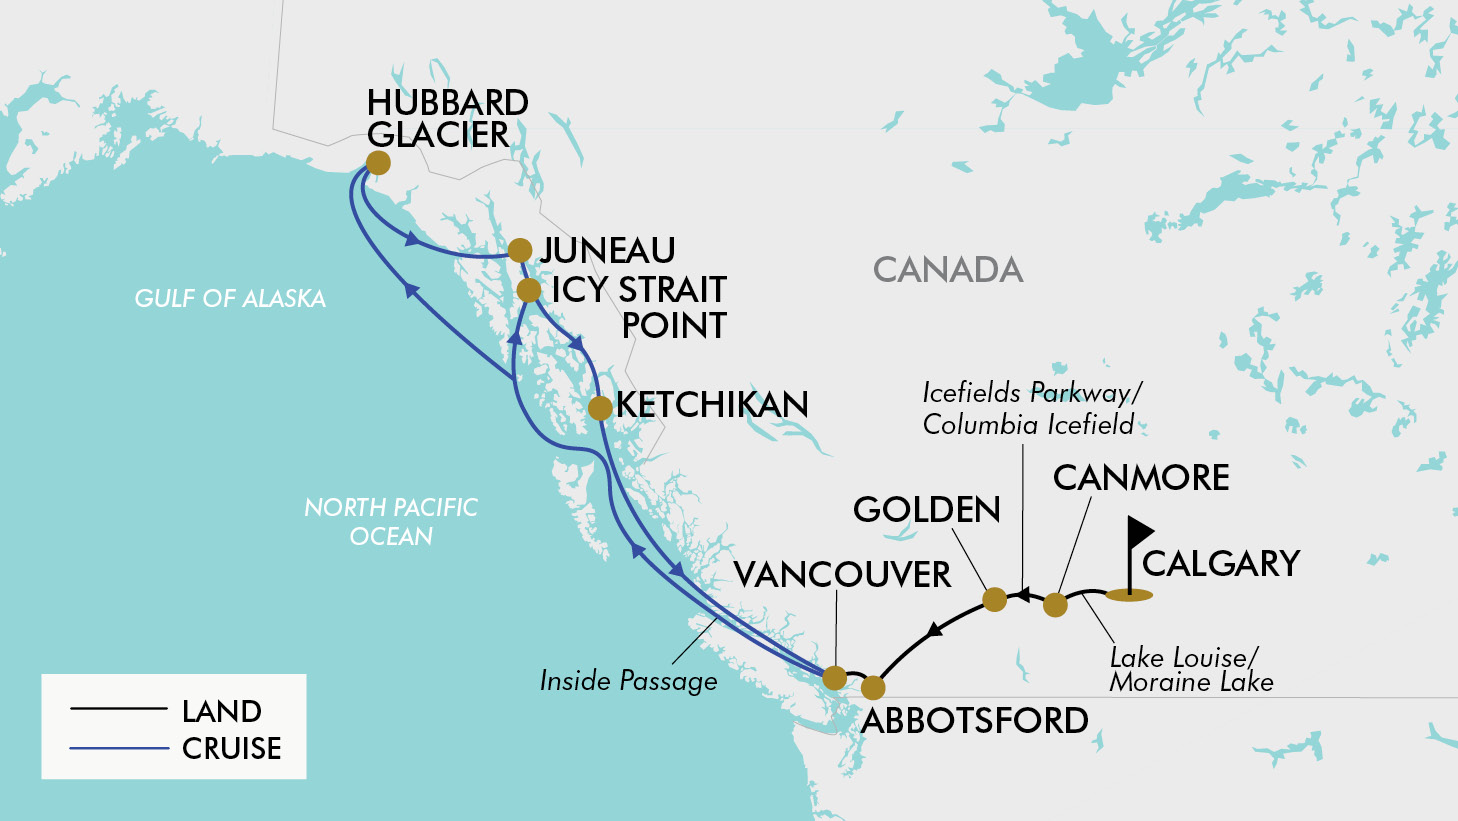 14 Day Alaska & Canada | TripADeal Map Of Alaska And Canada on richardson highway, top of the world highway, map of united states, map of australia, map of alaska coastline, map of canada with cities, driving the alaska highway canada, dawson city, fort nelson, map of ketchikan alaska, blank map of canada, prince george, map alaska and hawaii in the same, cruise inside passage canada, map of mountains of alaska, klondike gold rush, klondike highway, yukon river, map of cordova alaska, fort st. john, map of jasper national park canada, road map of canada, dempster highway, map of north america, street map vancouver bc canada, trans-alaska pipeline system, watson lake, delta junction, map of states bordering canada, map of hotels in toronto canada, map of alaska highway, dalton highway, pan-american highway, map of alaska subsistence, dawson creek, alaska cruise map canada,